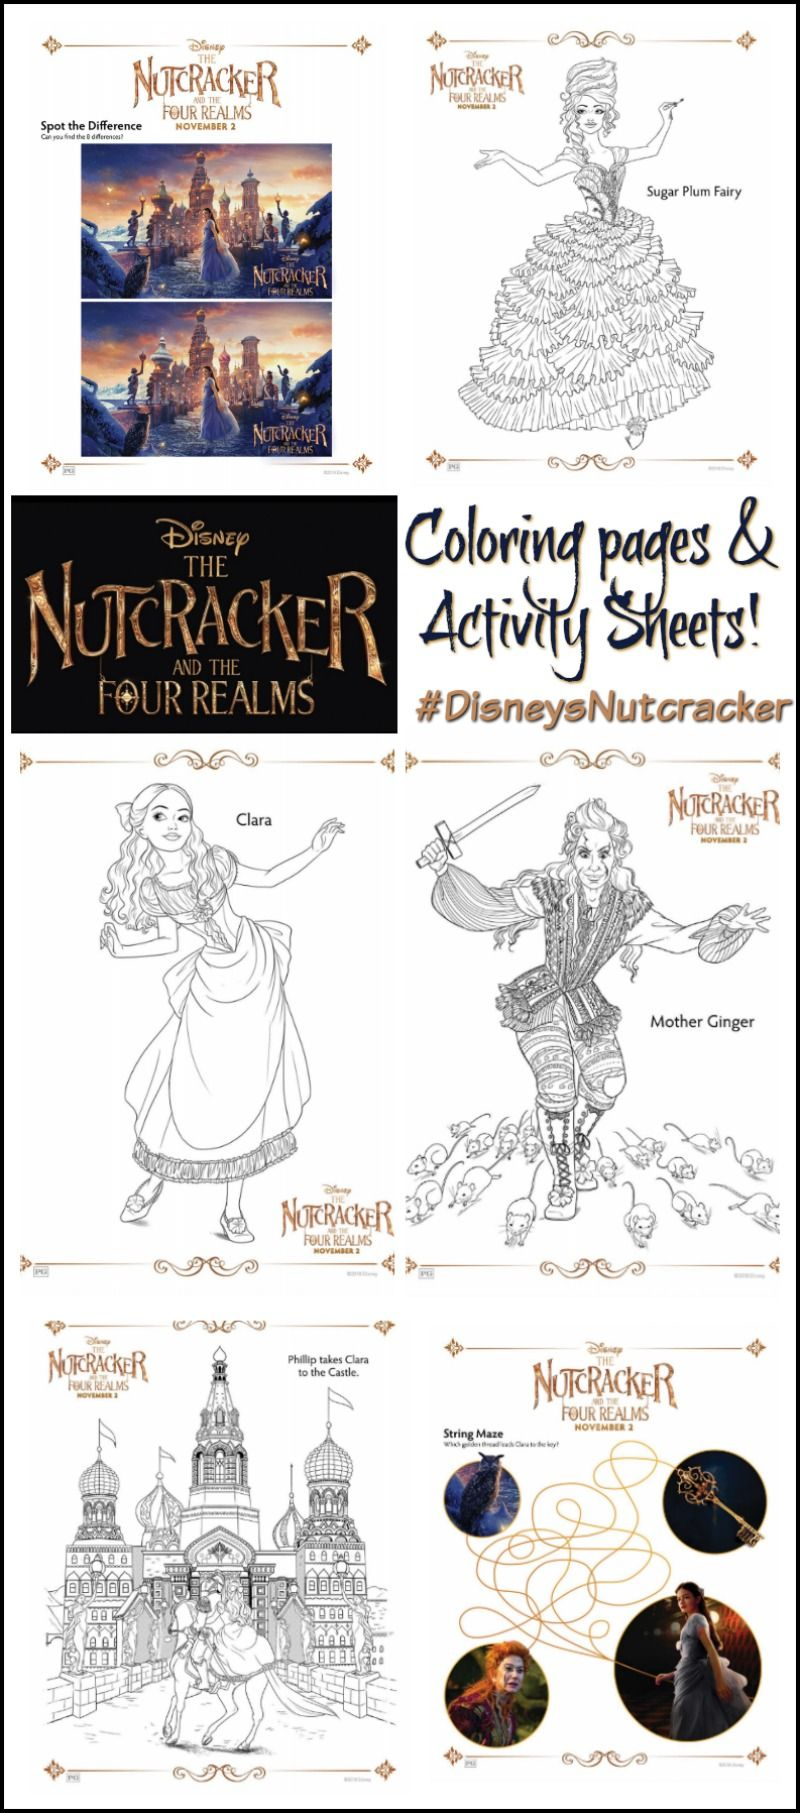 The Nutcracker And The Four Realms Coloring Pages Activity Sheets